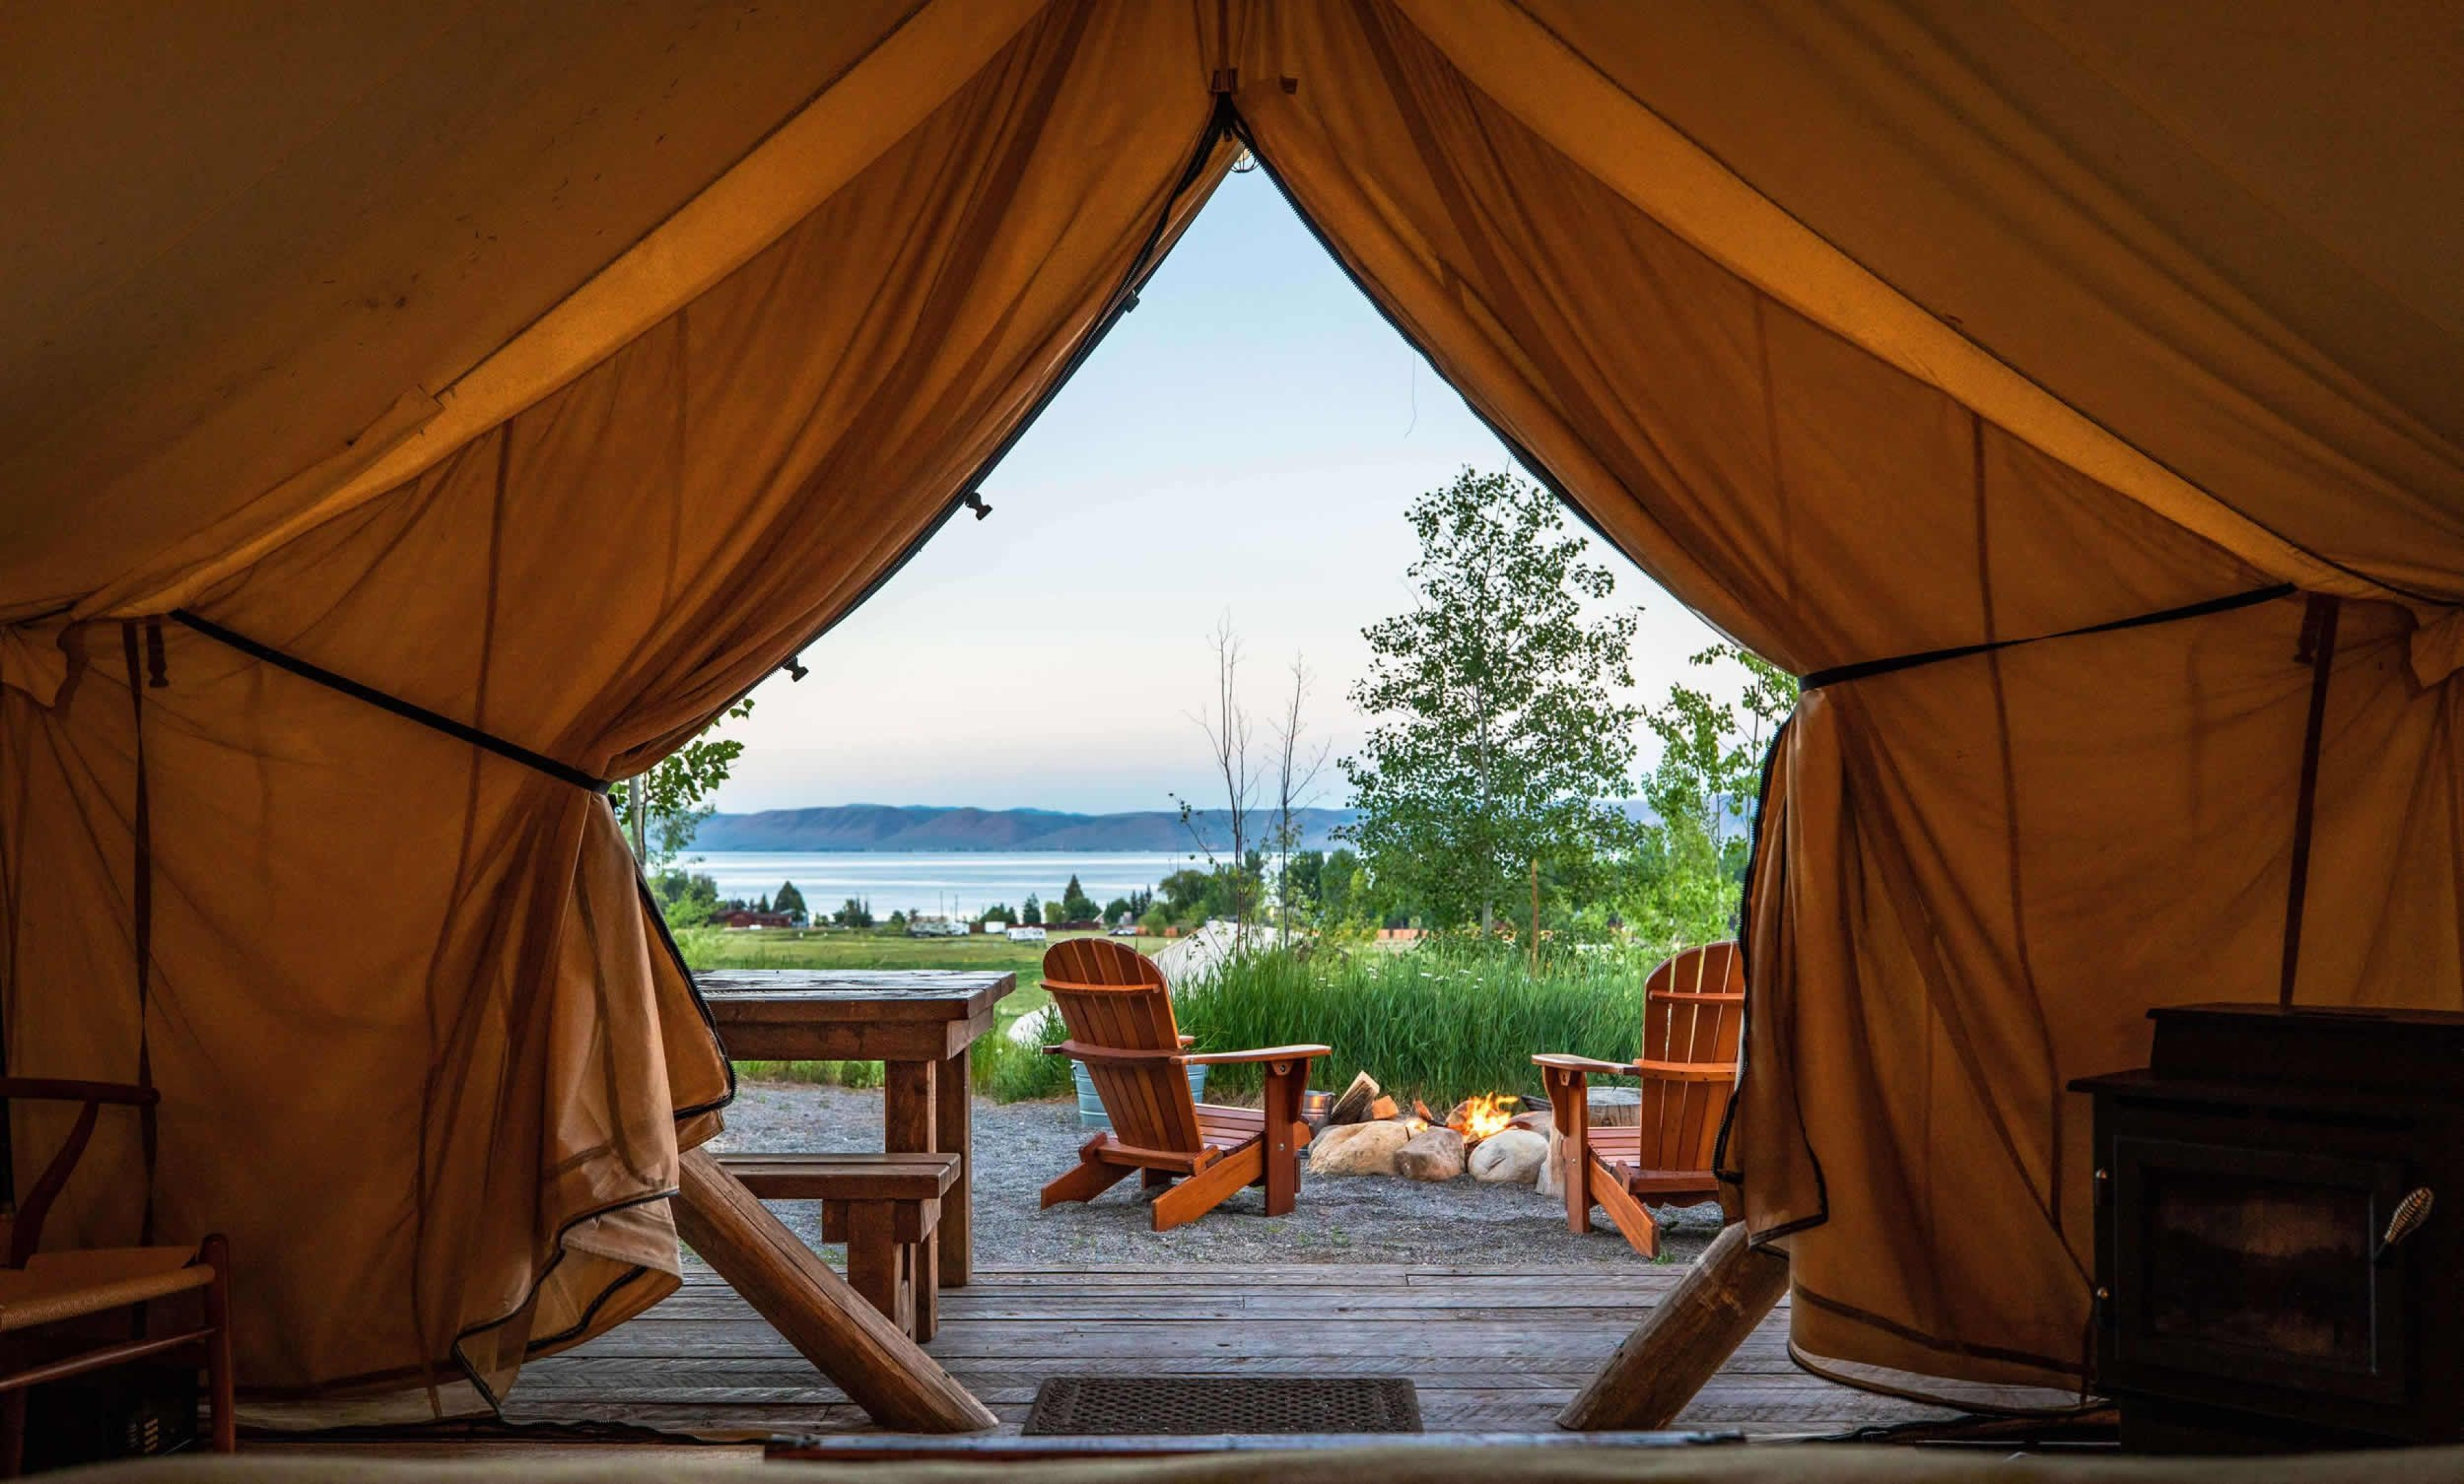 6 Best Glamping Spots in the UK